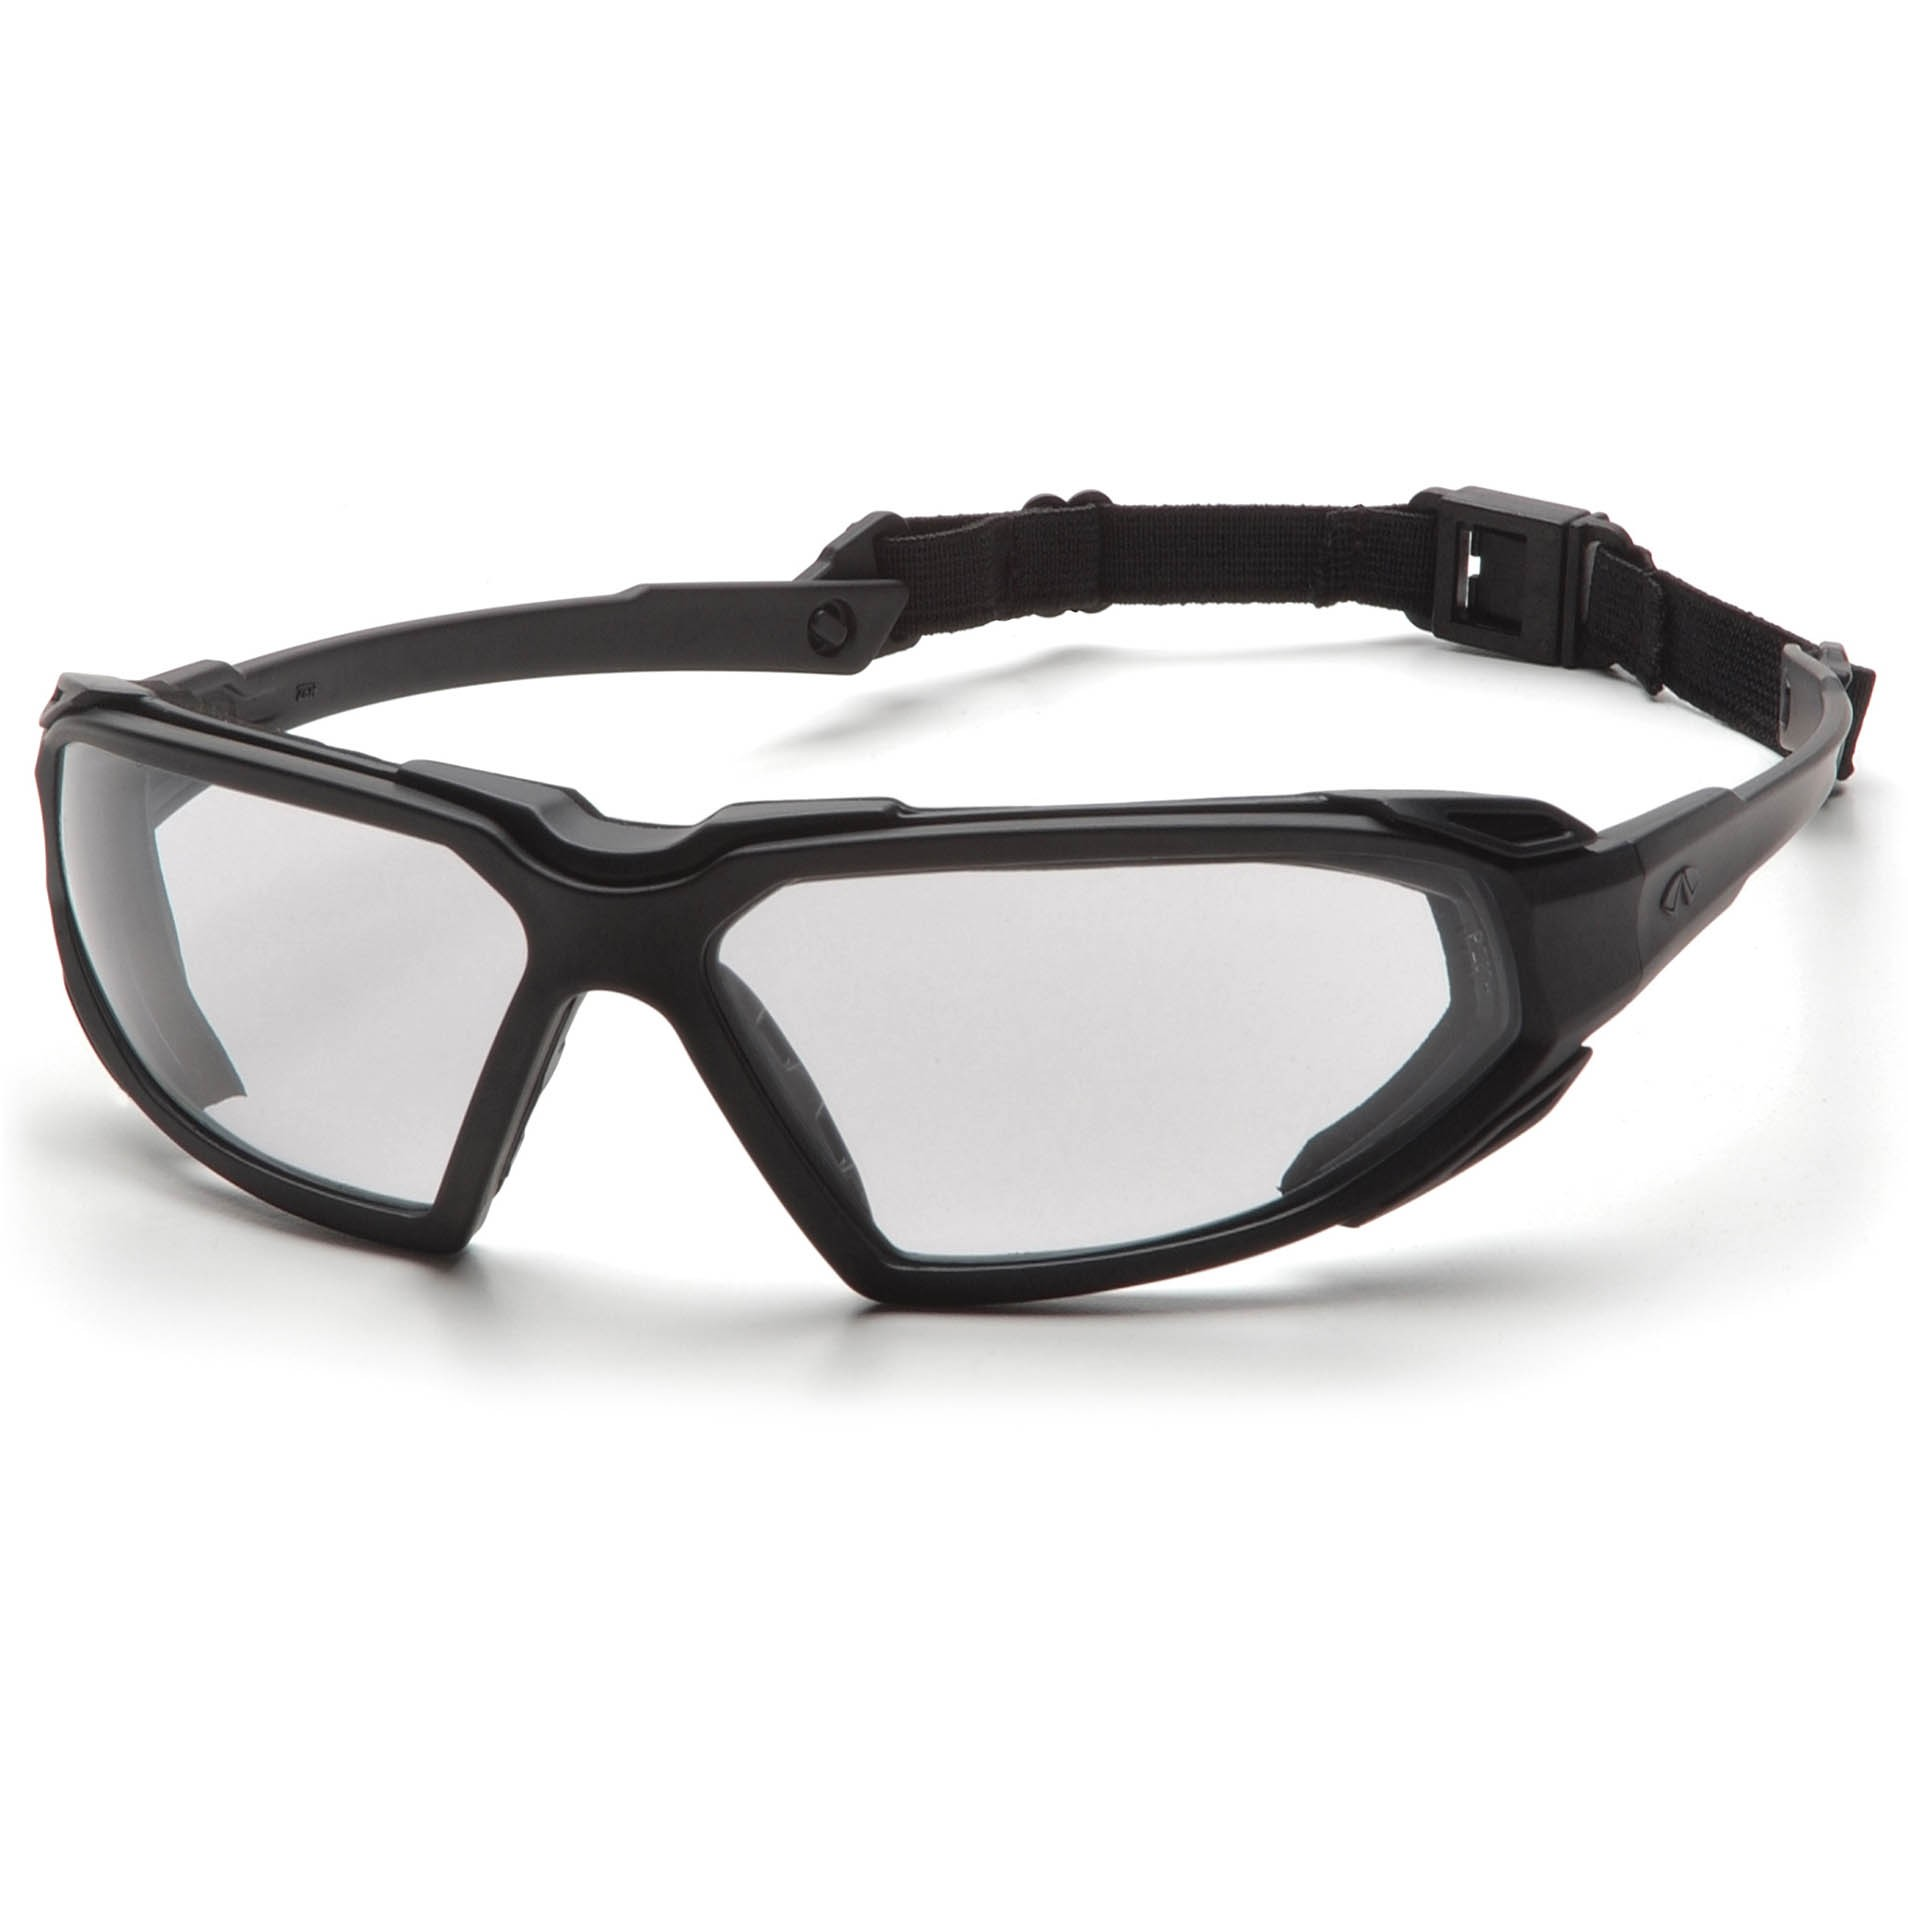 Black Frame Safety Glasses : Pyramex Highlander Safety Glasses - Black Frame - Clear ...